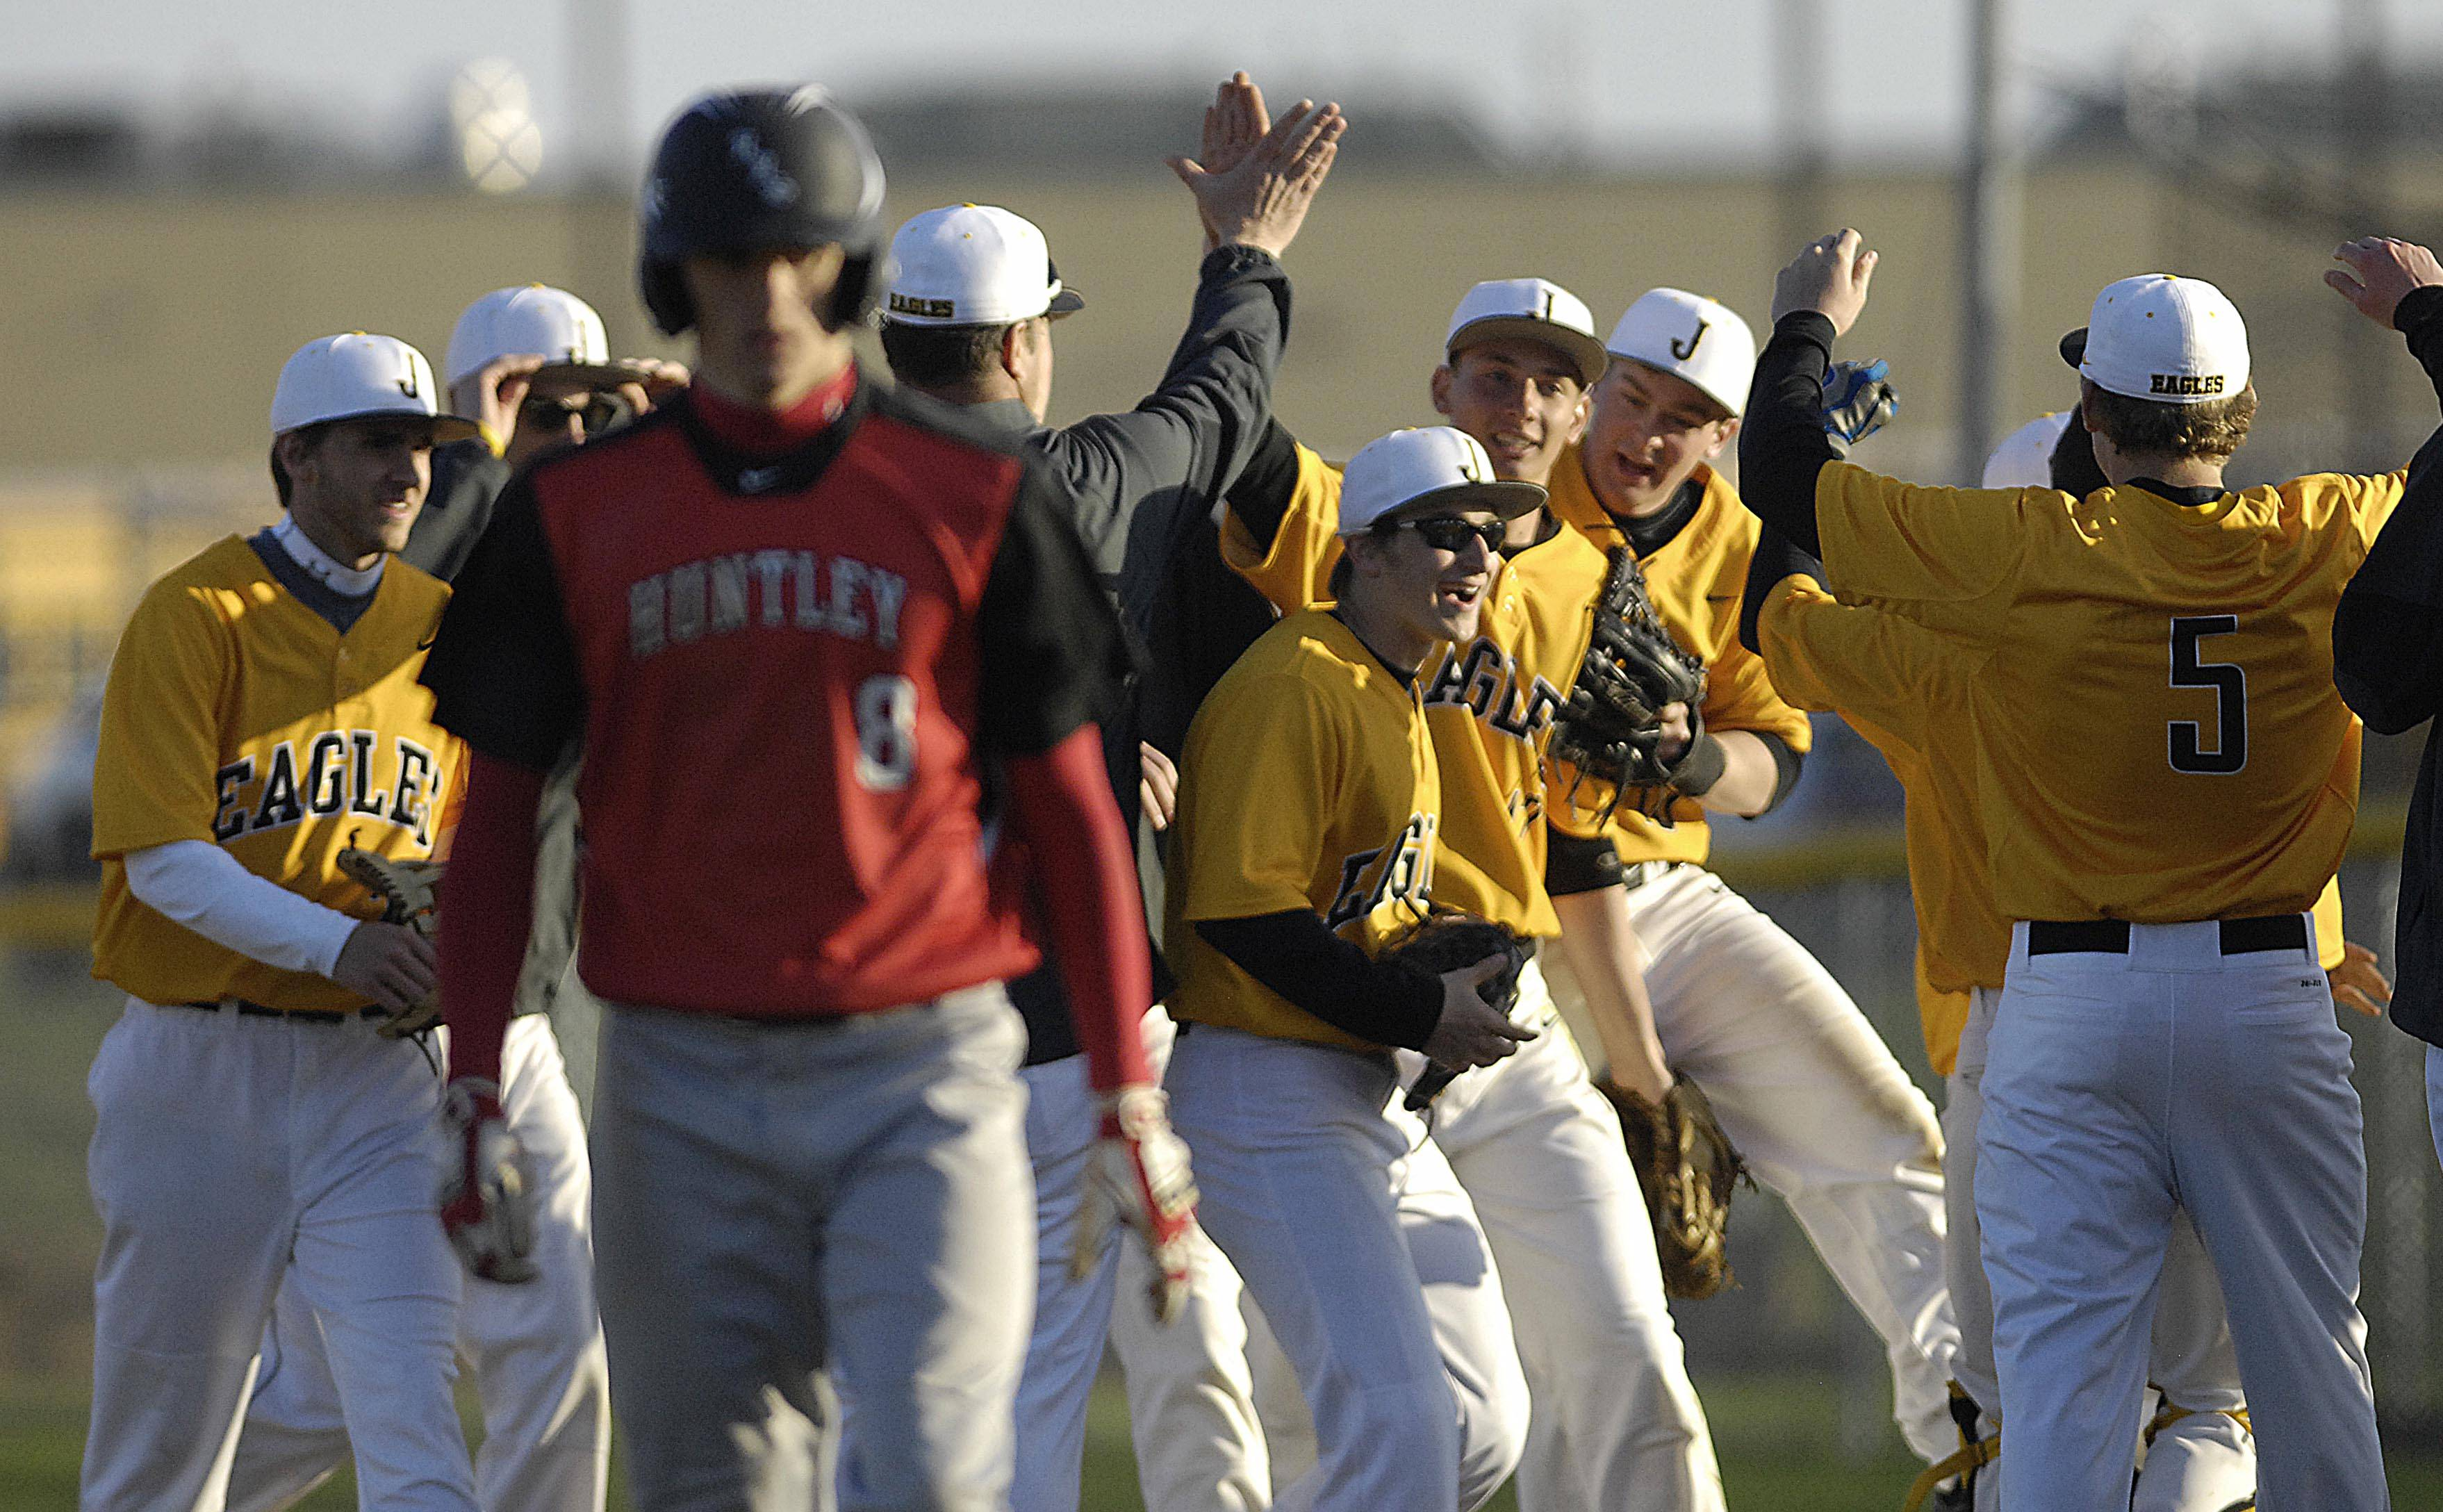 The Jacobs Golden Eagles celebrate their win over Huntley Tuesday in Algonquin.